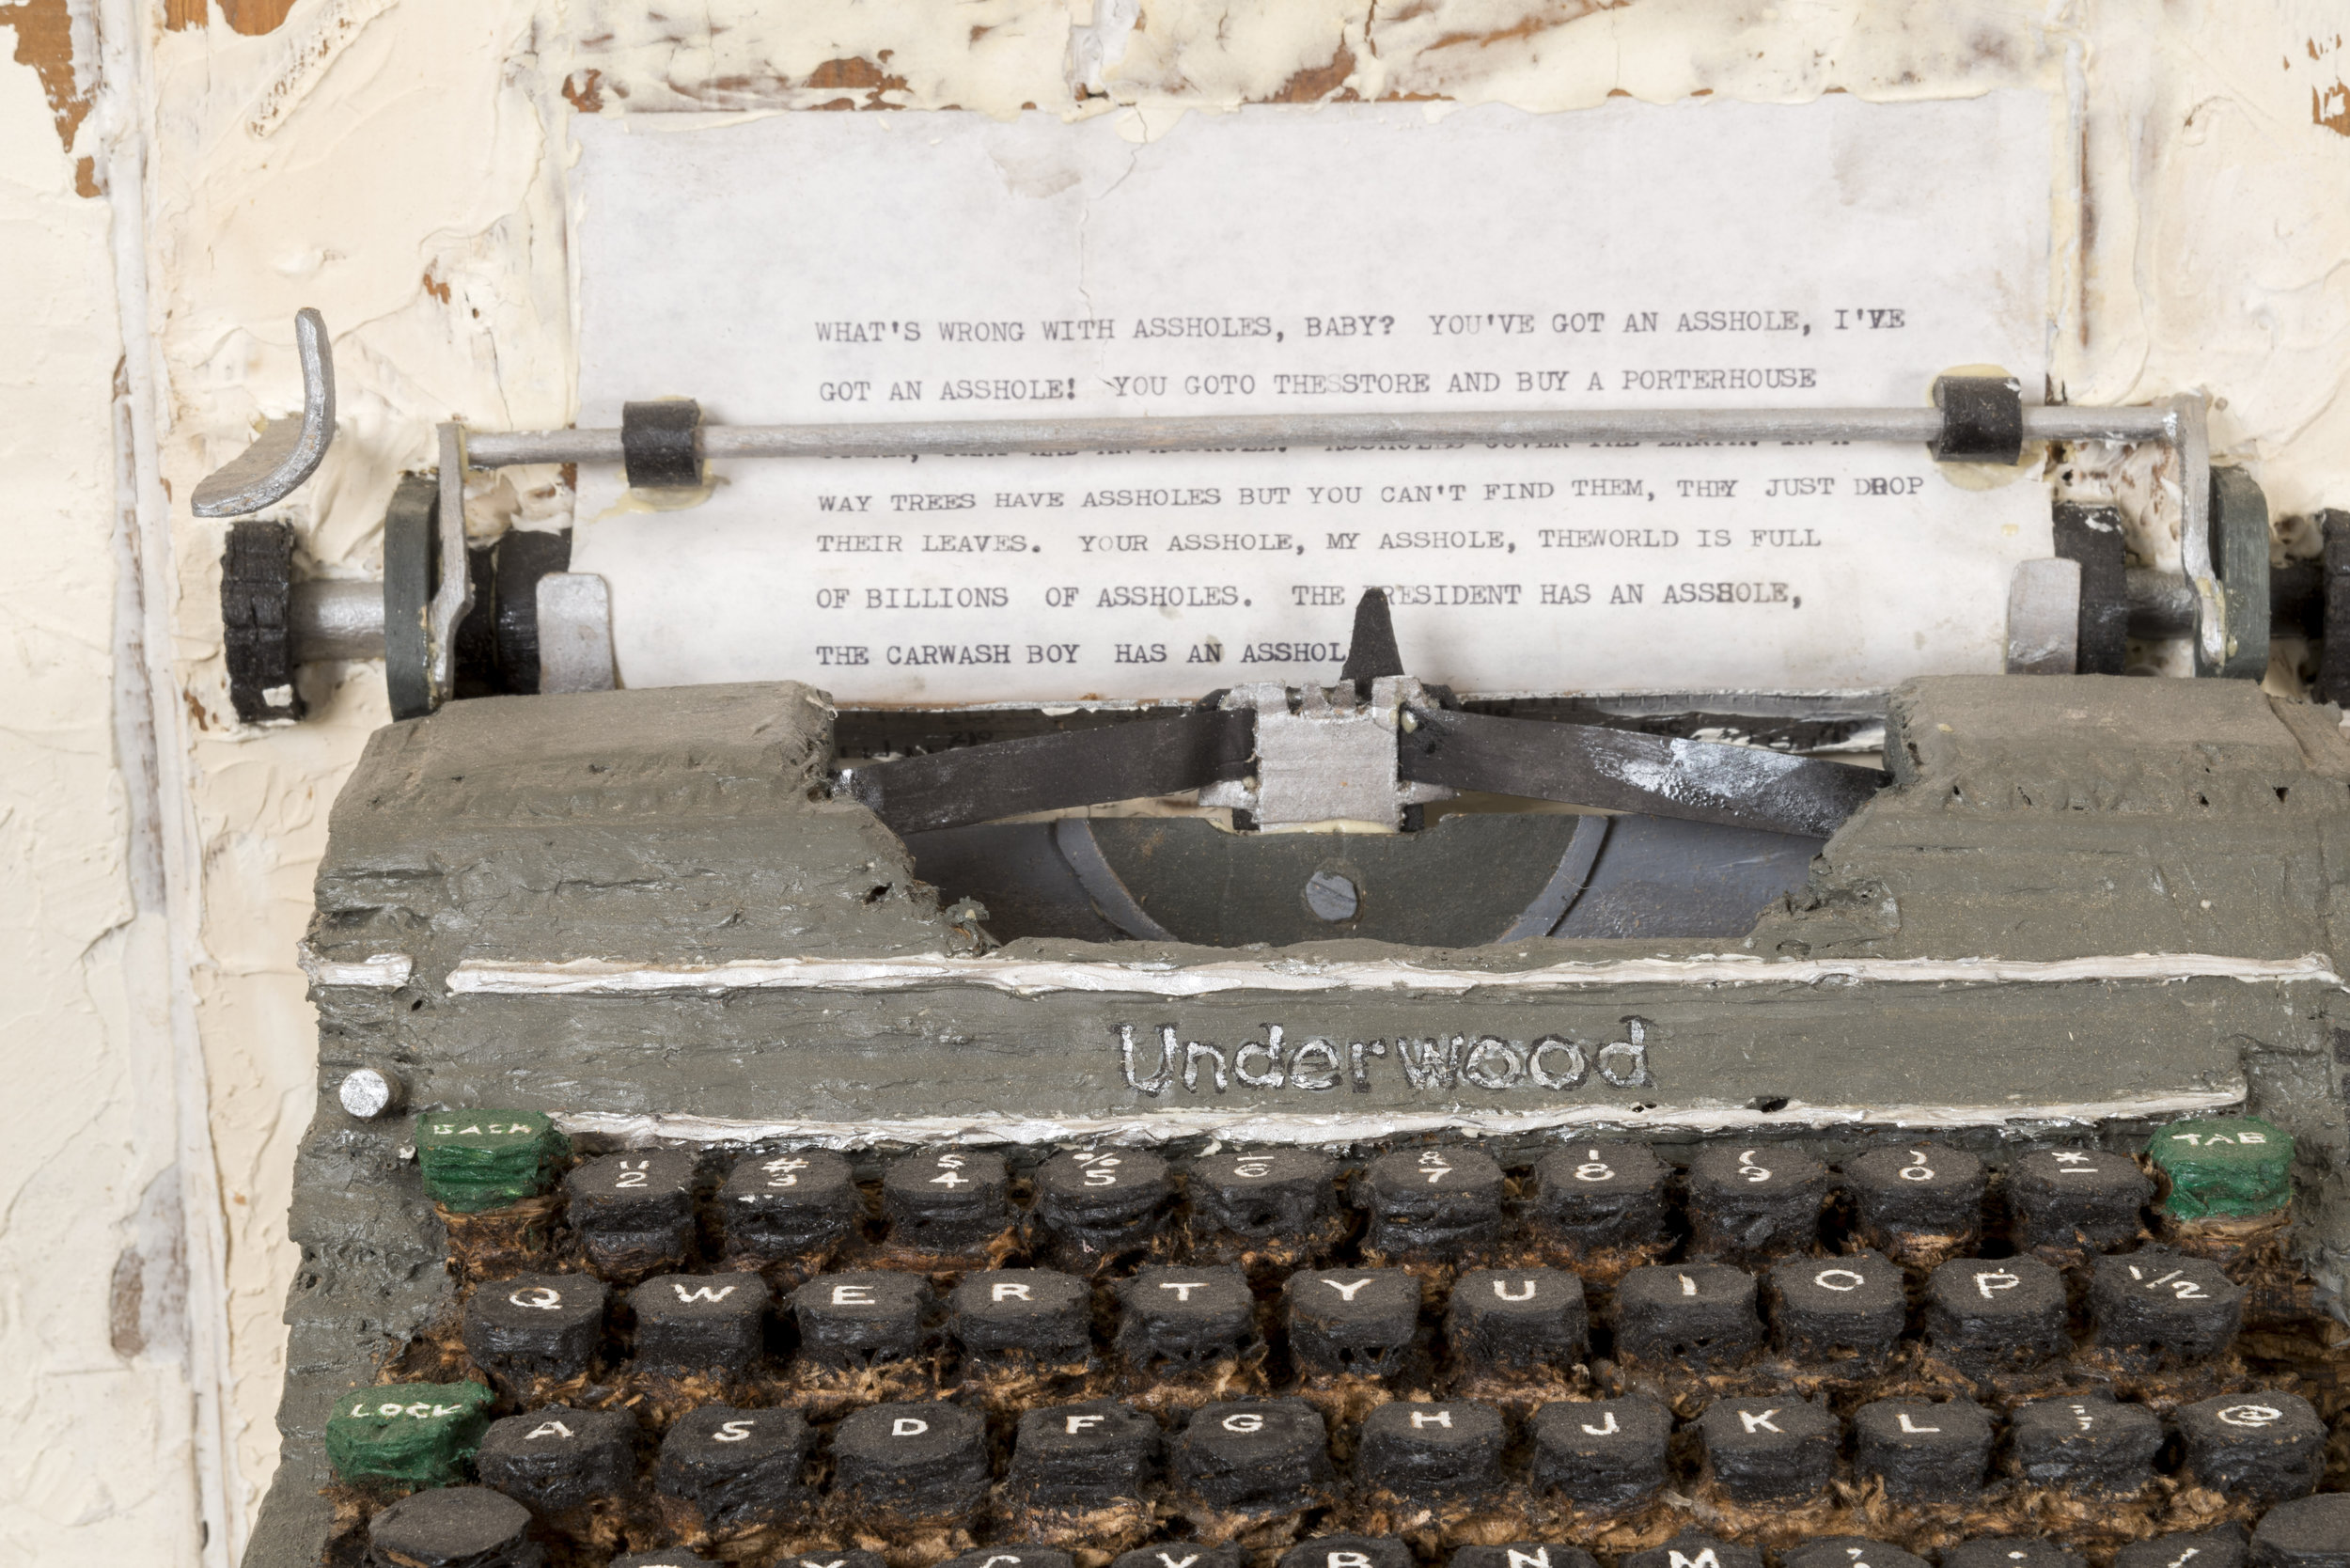 'Charles Bukowski's Underwood Champion' (detail), 2013, mixed media, approx. 30 x 36 x 12 inches. Photo credit: Joshua White/JWPictures.com